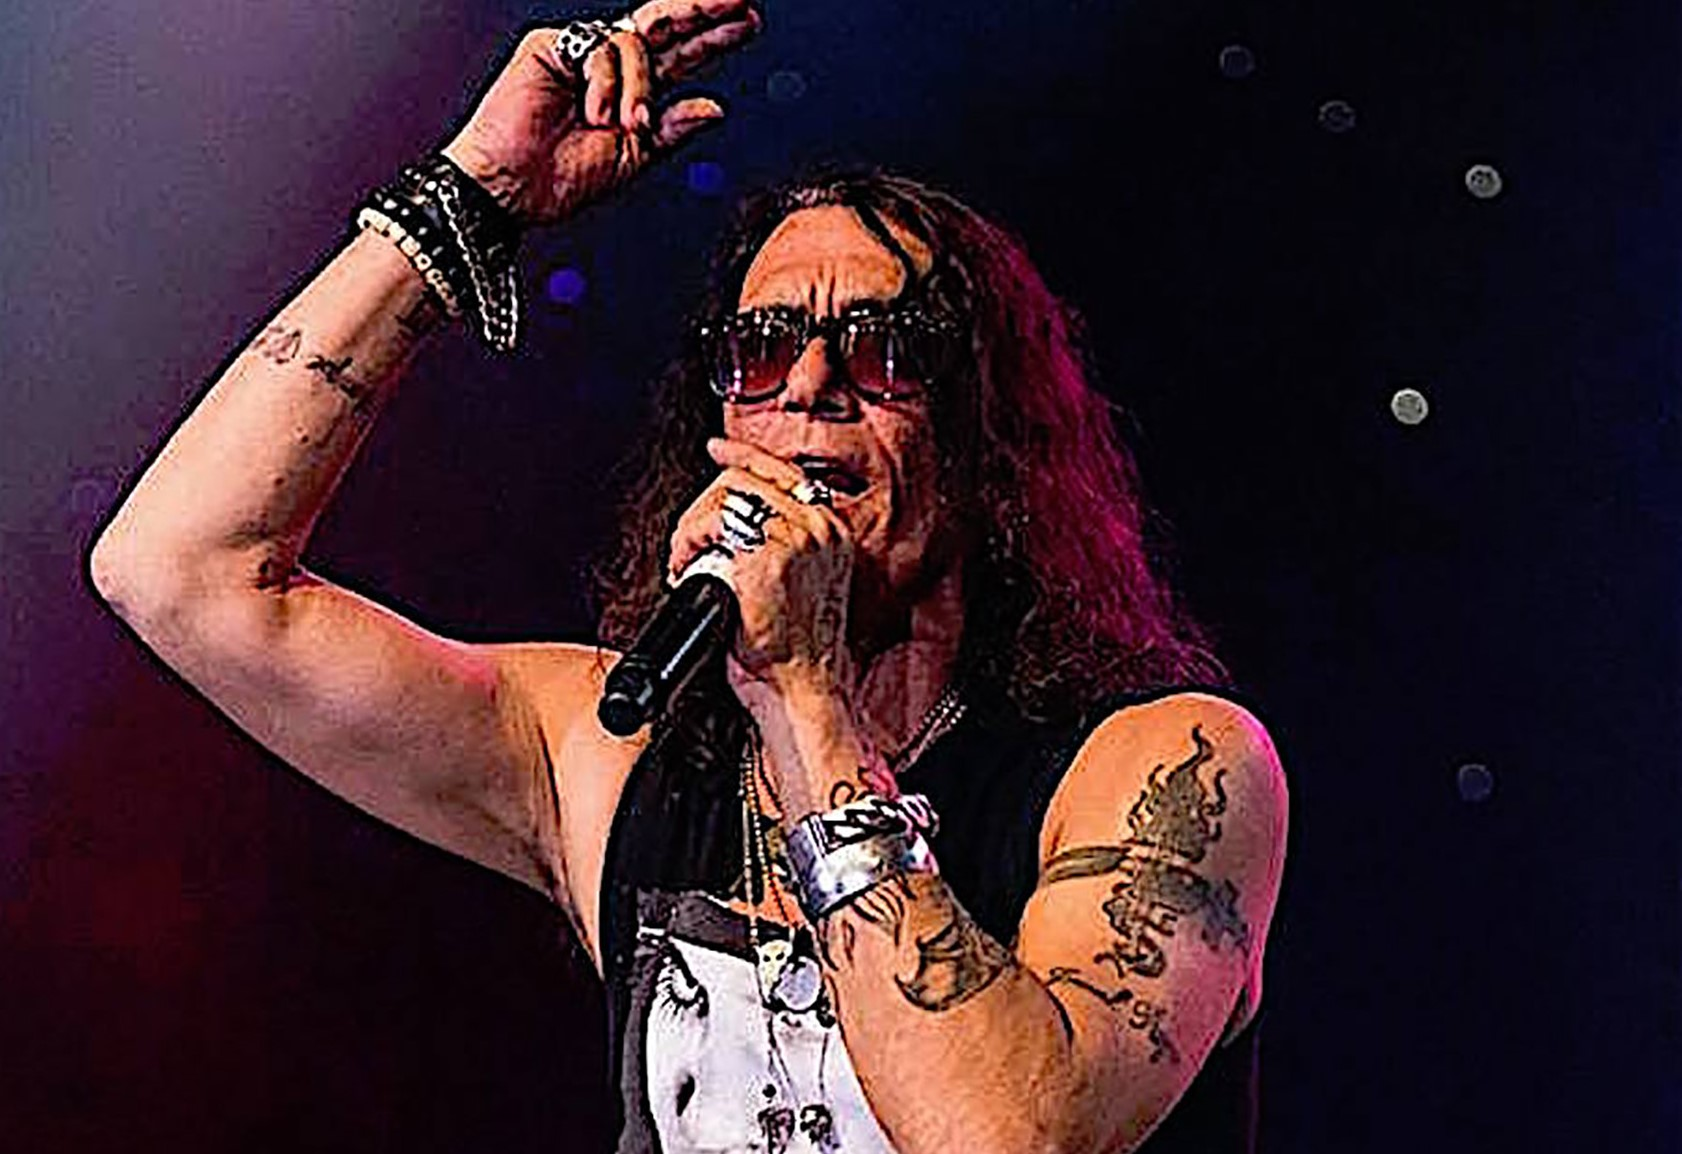 Stephen Pearcy: Smash (2017)